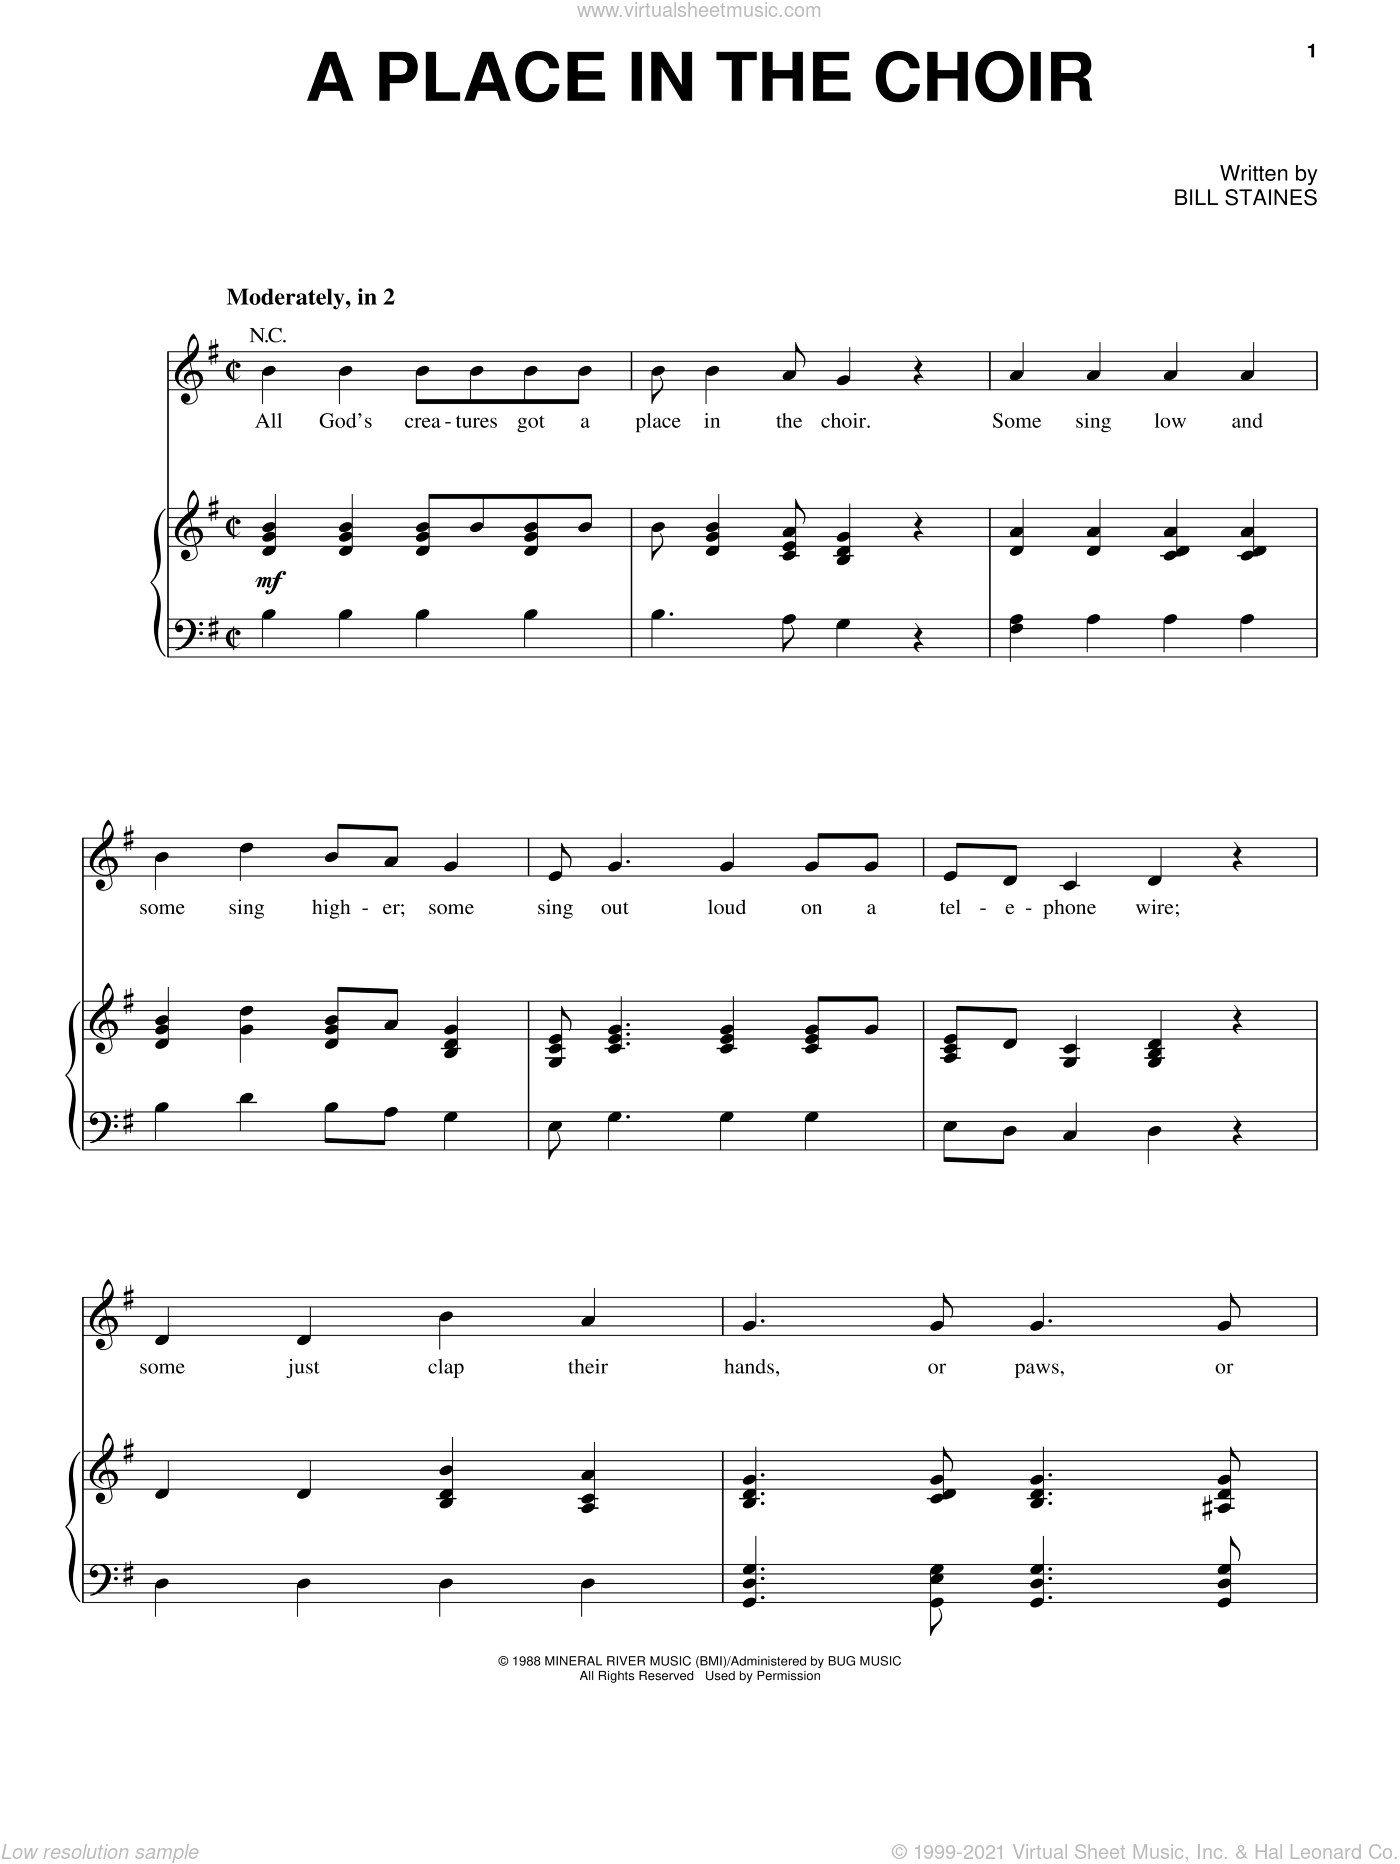 A Place In The Choir sheet music for voice, piano or guitar by Bill Staines